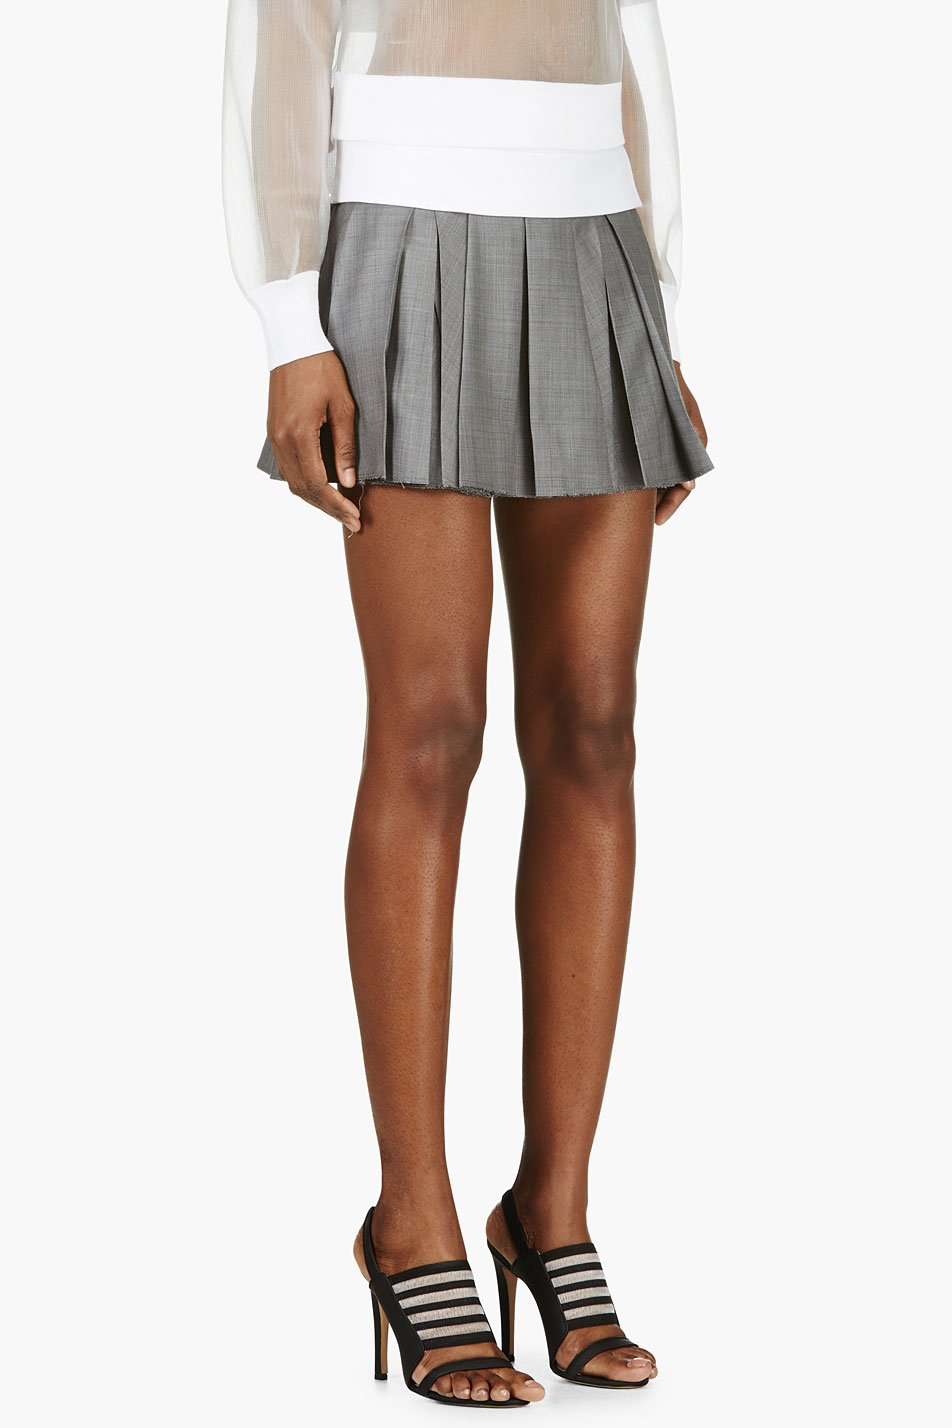 Alexander wang Grey Wool Crosshatch Pleated Mini Skirt in Gray | Lyst